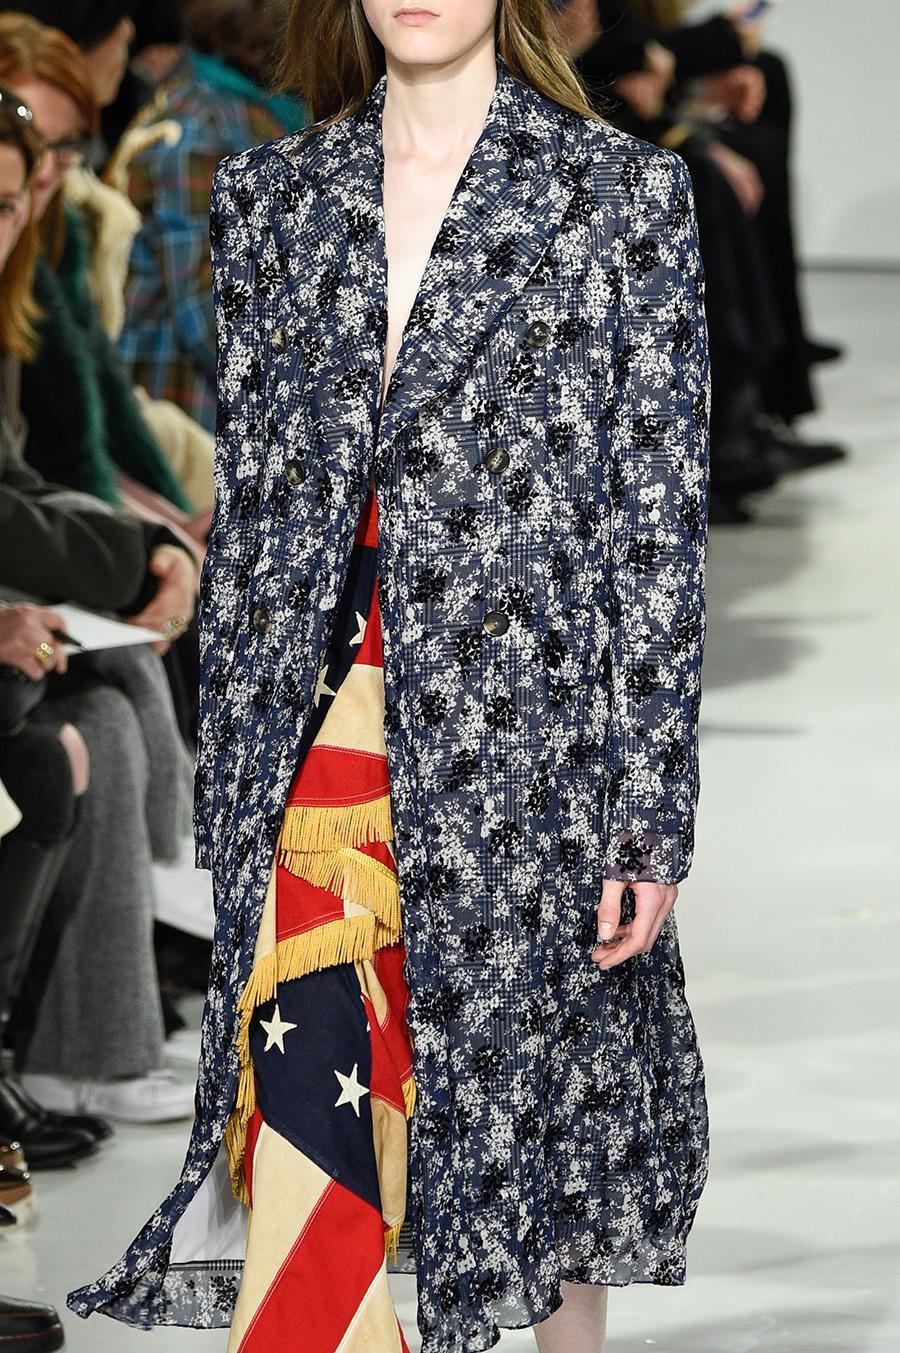 """<p>At Raf Simons's debut collection for Calvin Klein, patriotic red, white, and blue ensembles were cast against David Bowie's """"This Is Not America"""" song. In this look, Simons styles an American flag beneath a coat. (Photo: Getty Images) </p>"""